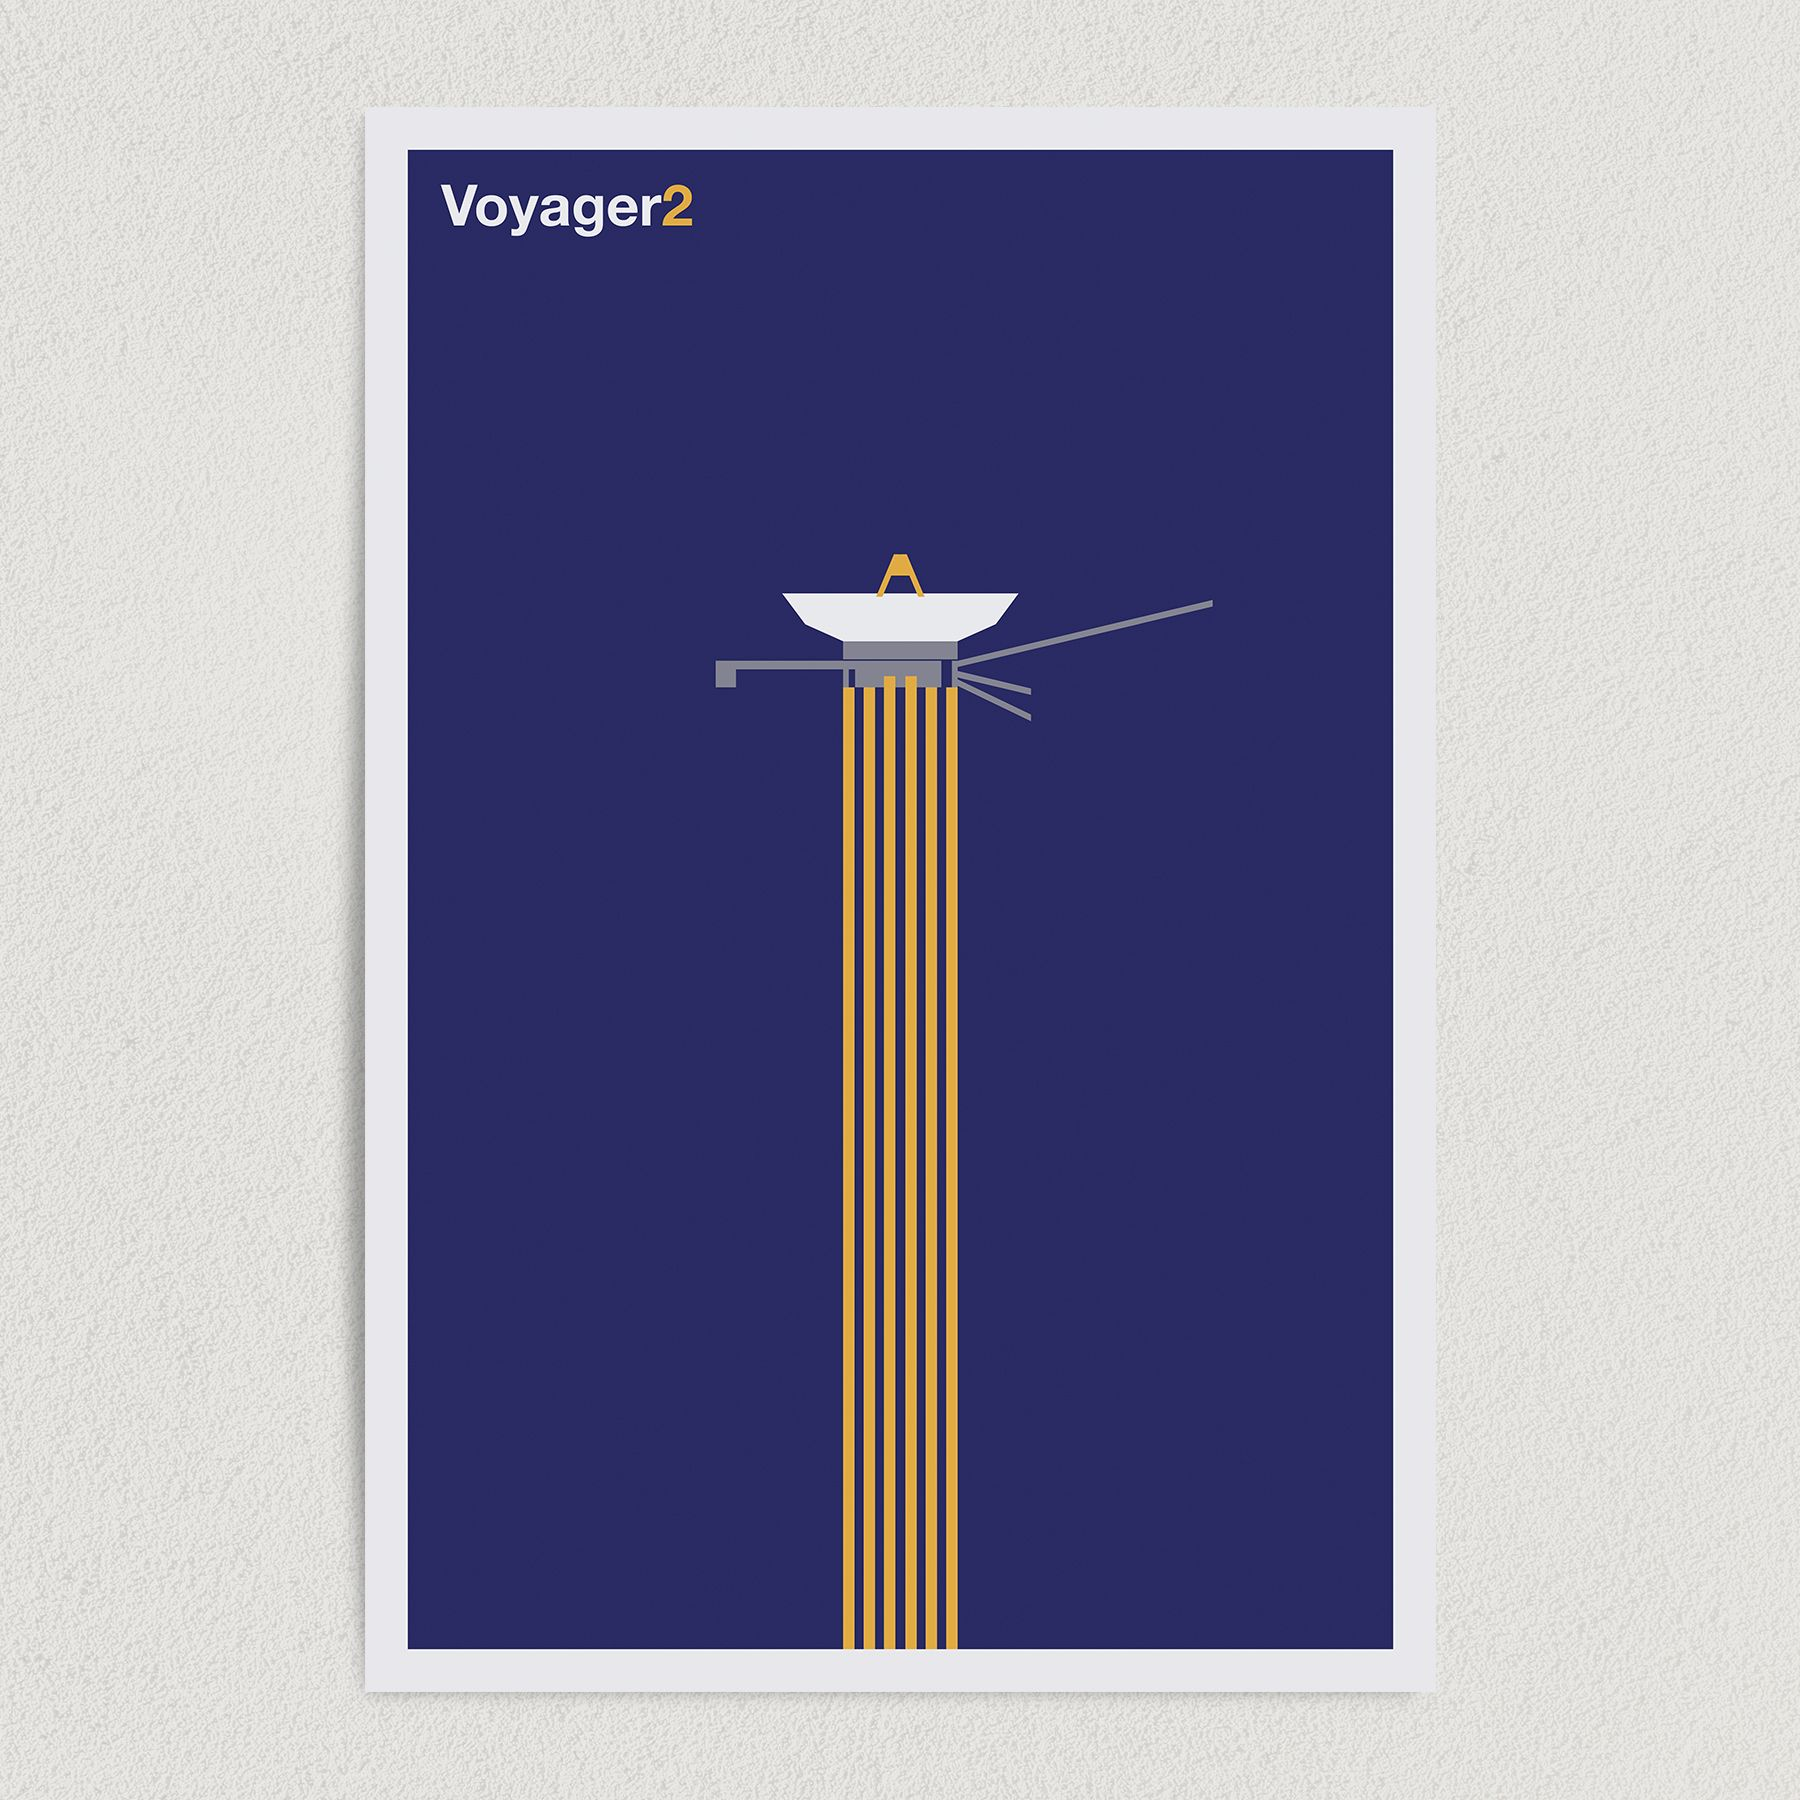 Voyager2 NASA Space Mission Art Print Poster 12″ x 18″ Wall Art SS2136